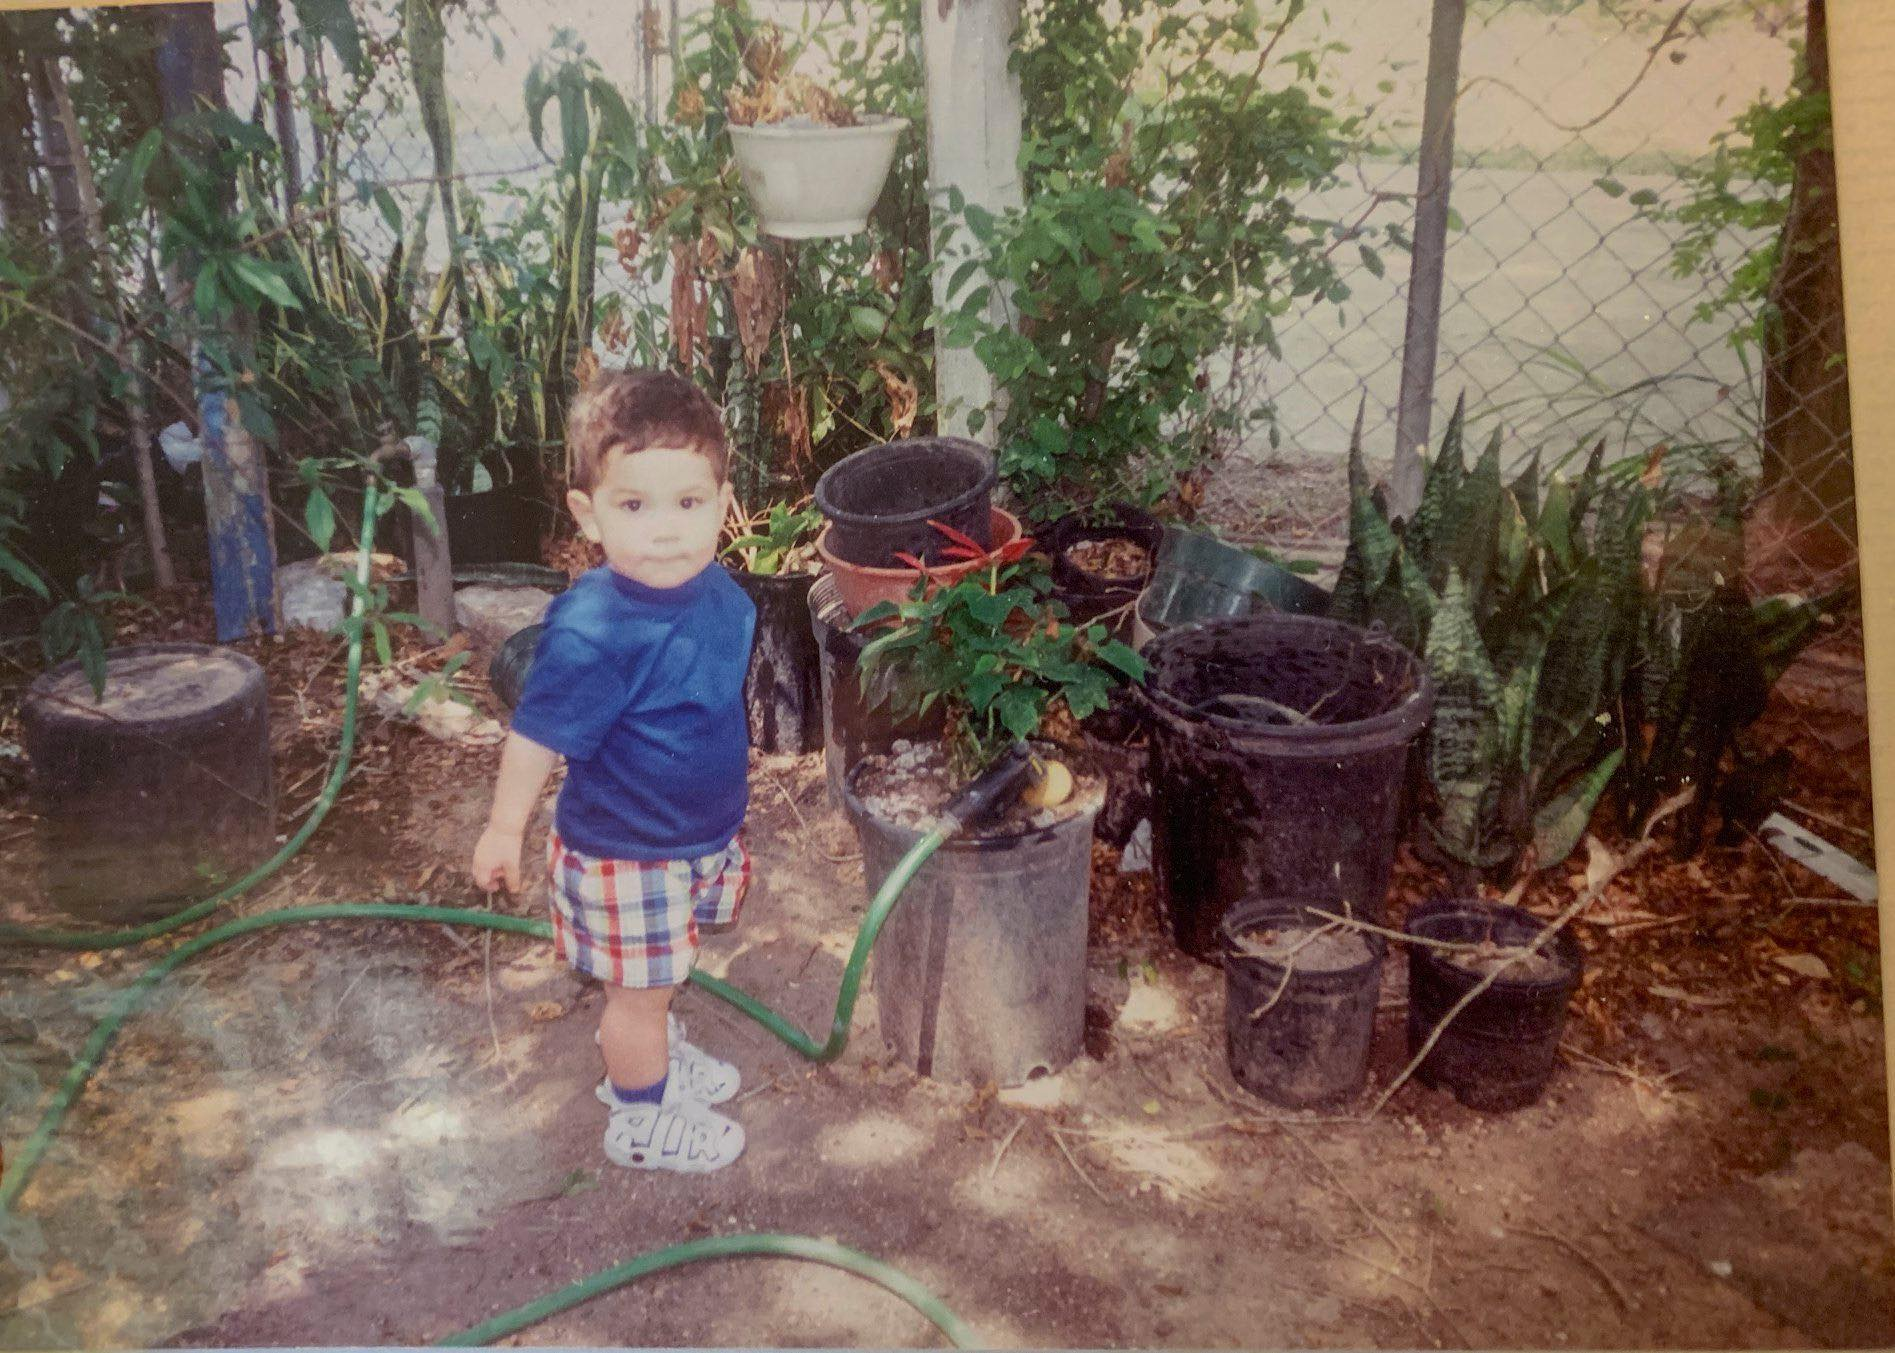 Young Danny Sanchez gardening in south Texas.